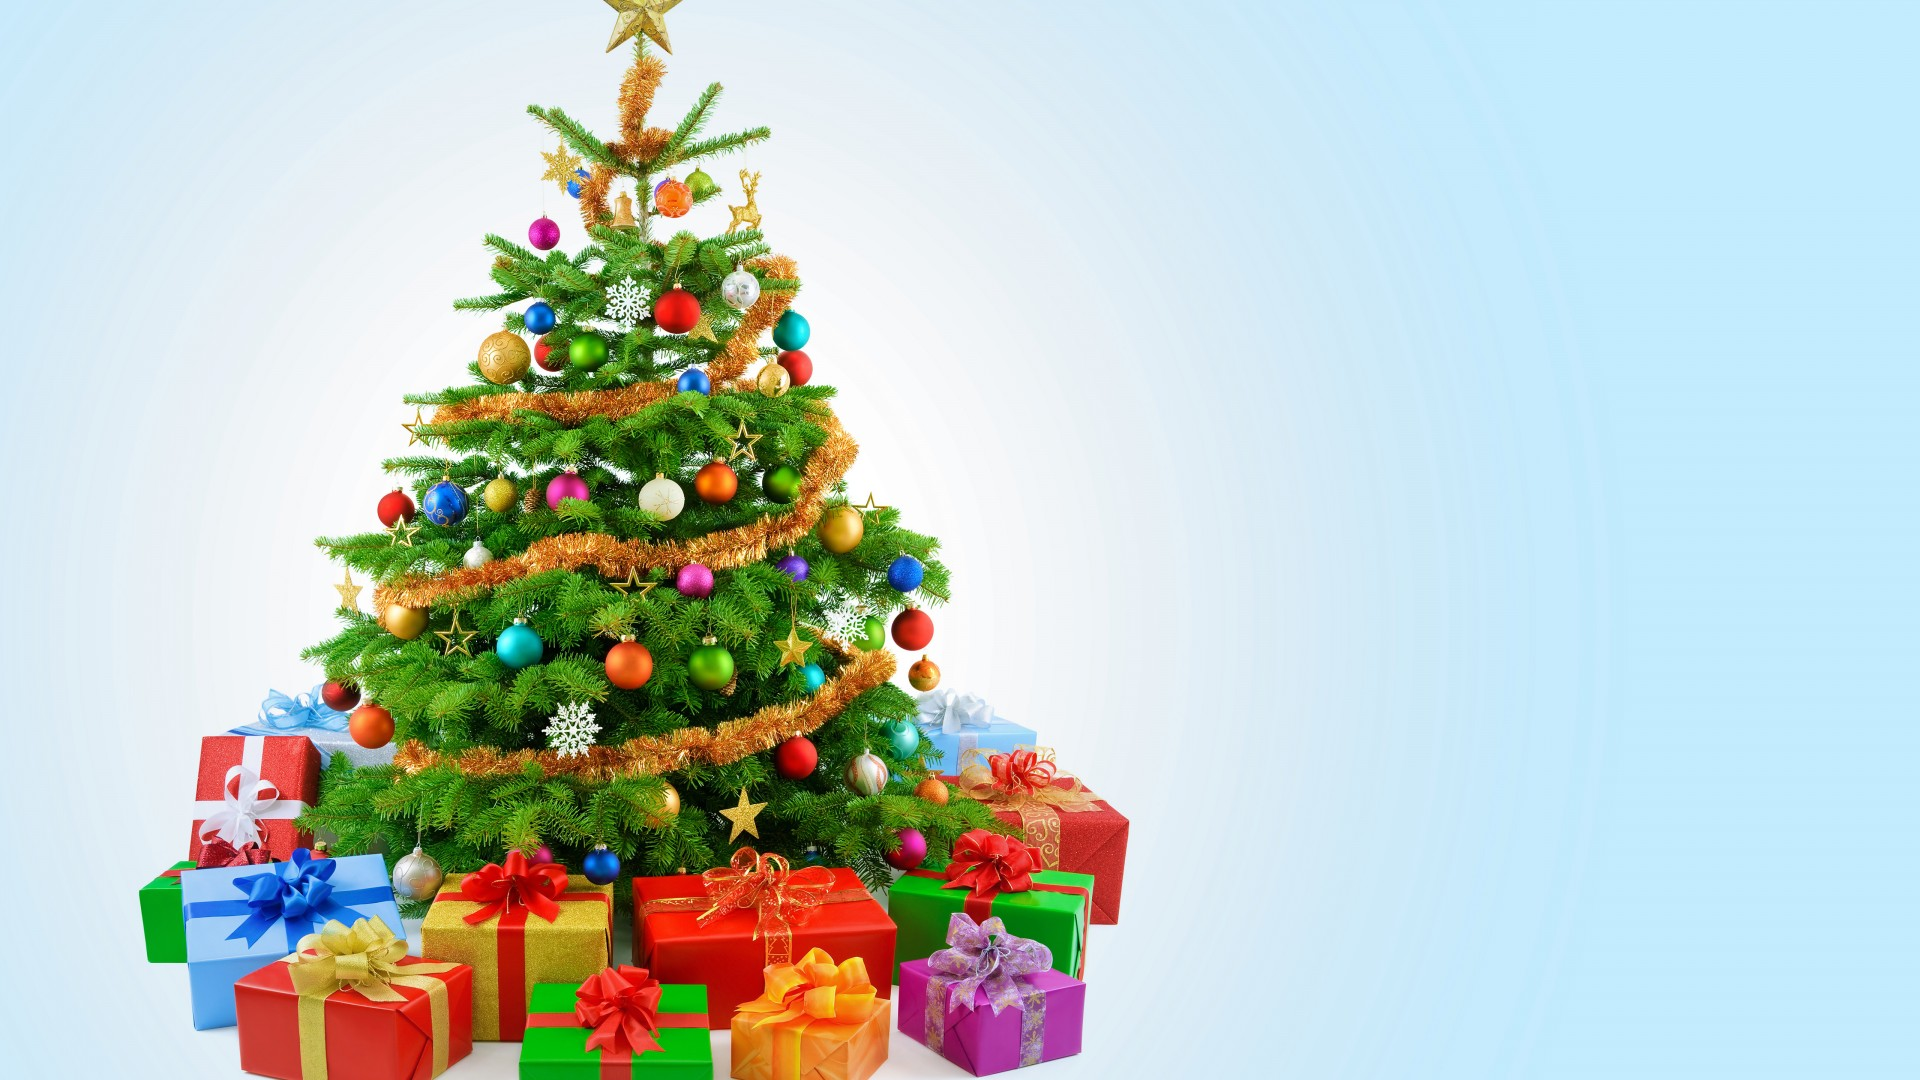 Christmas tree hd wallpaper 1080p